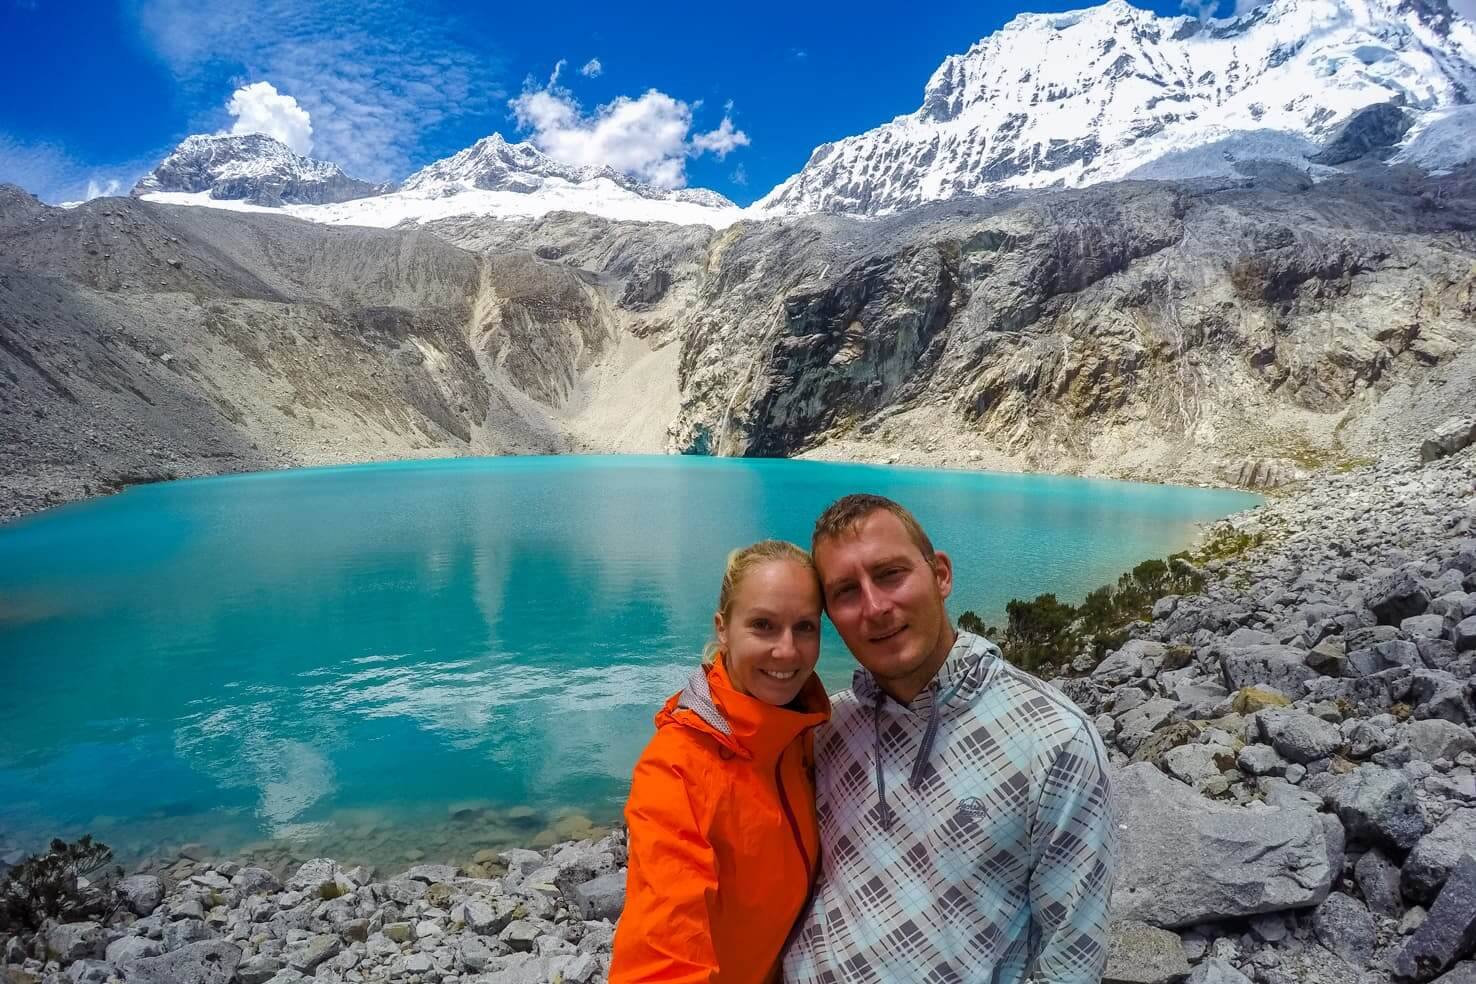 Hiking Laguna 69 Peru, the bluest lake in the Andes